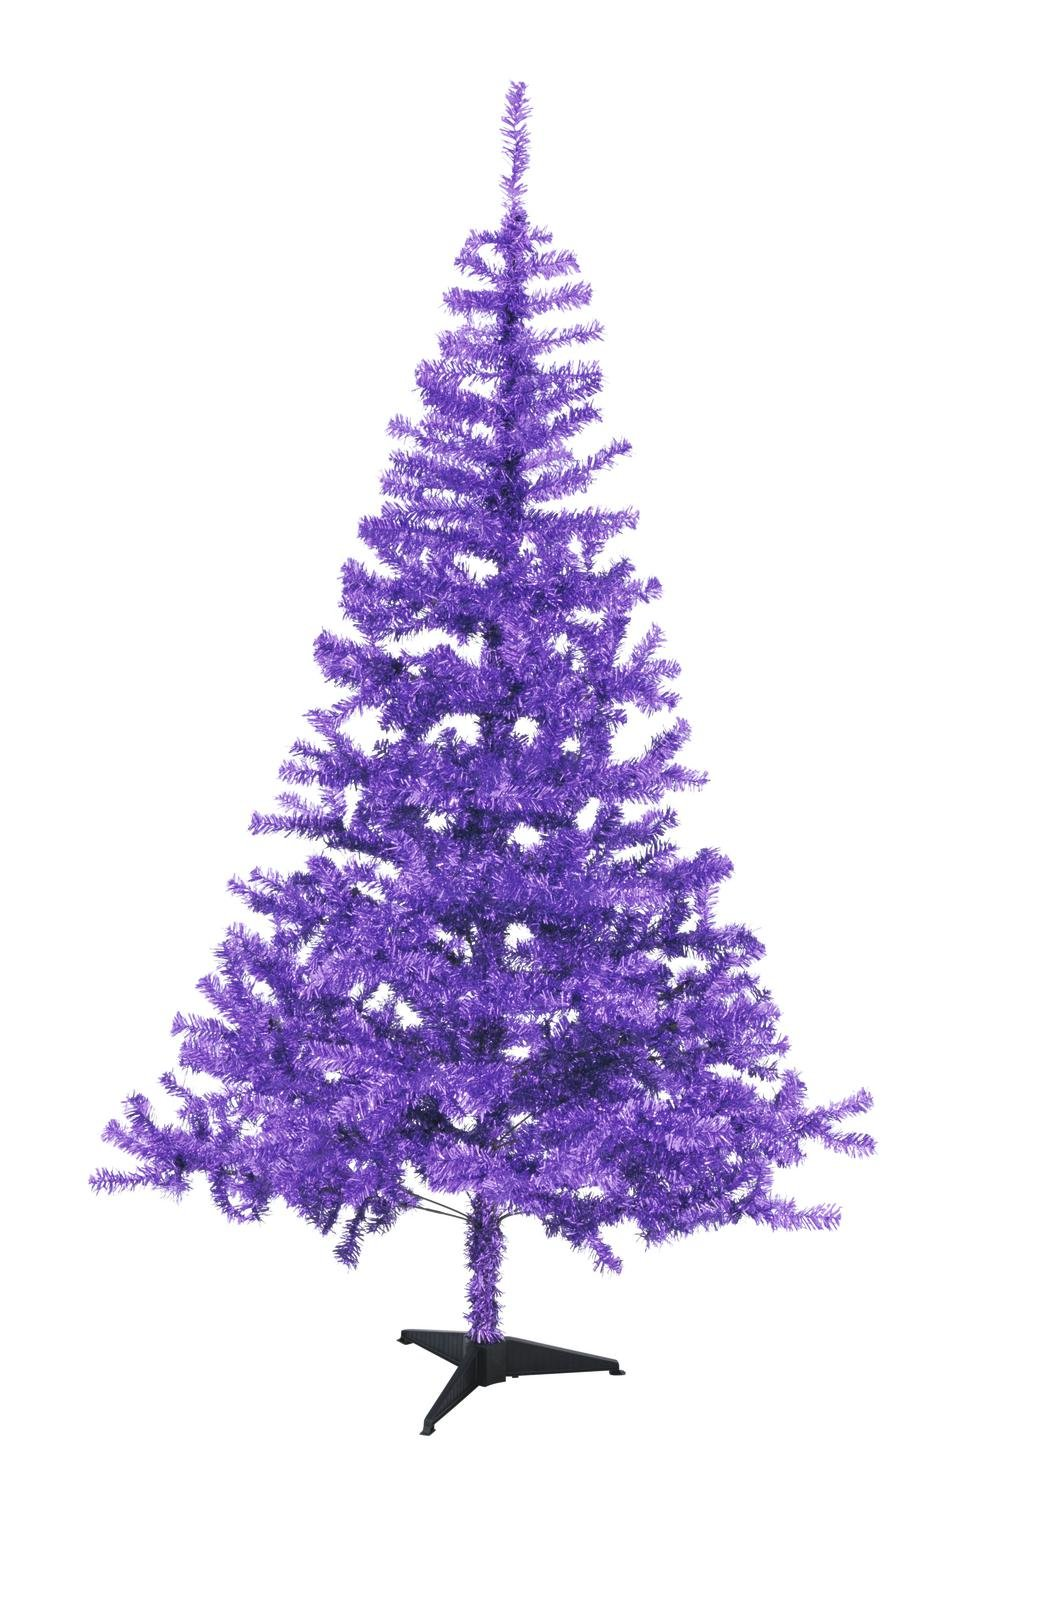 sapin-artificiel-pourpre-240cm